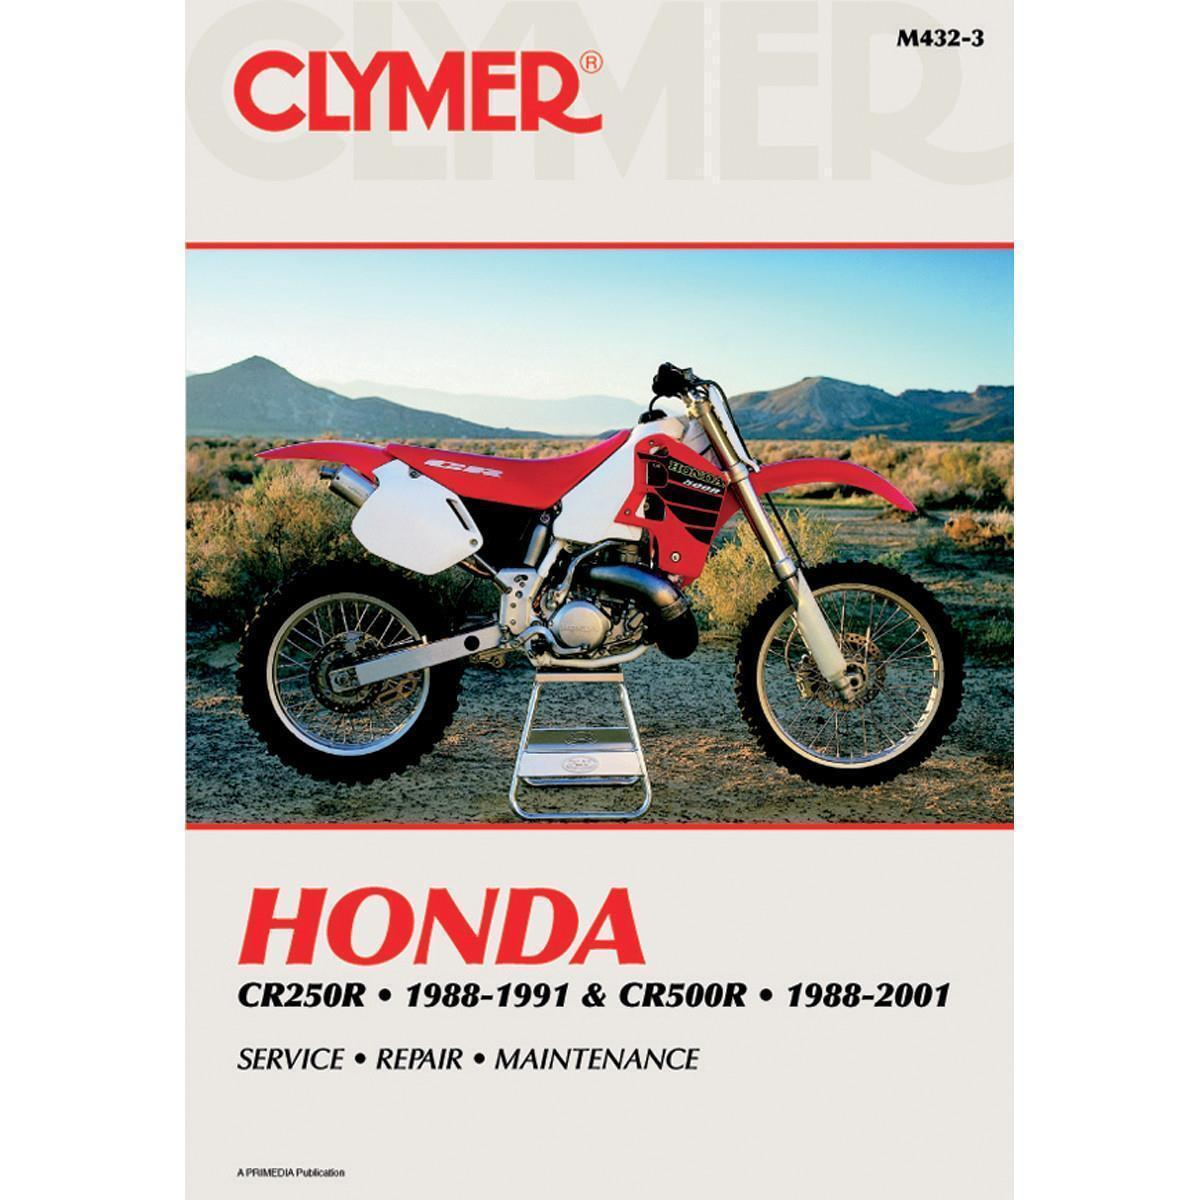 Clymer M432 3 Repair Manual Ebay Cr250r Wiring Diagram Stock Photo